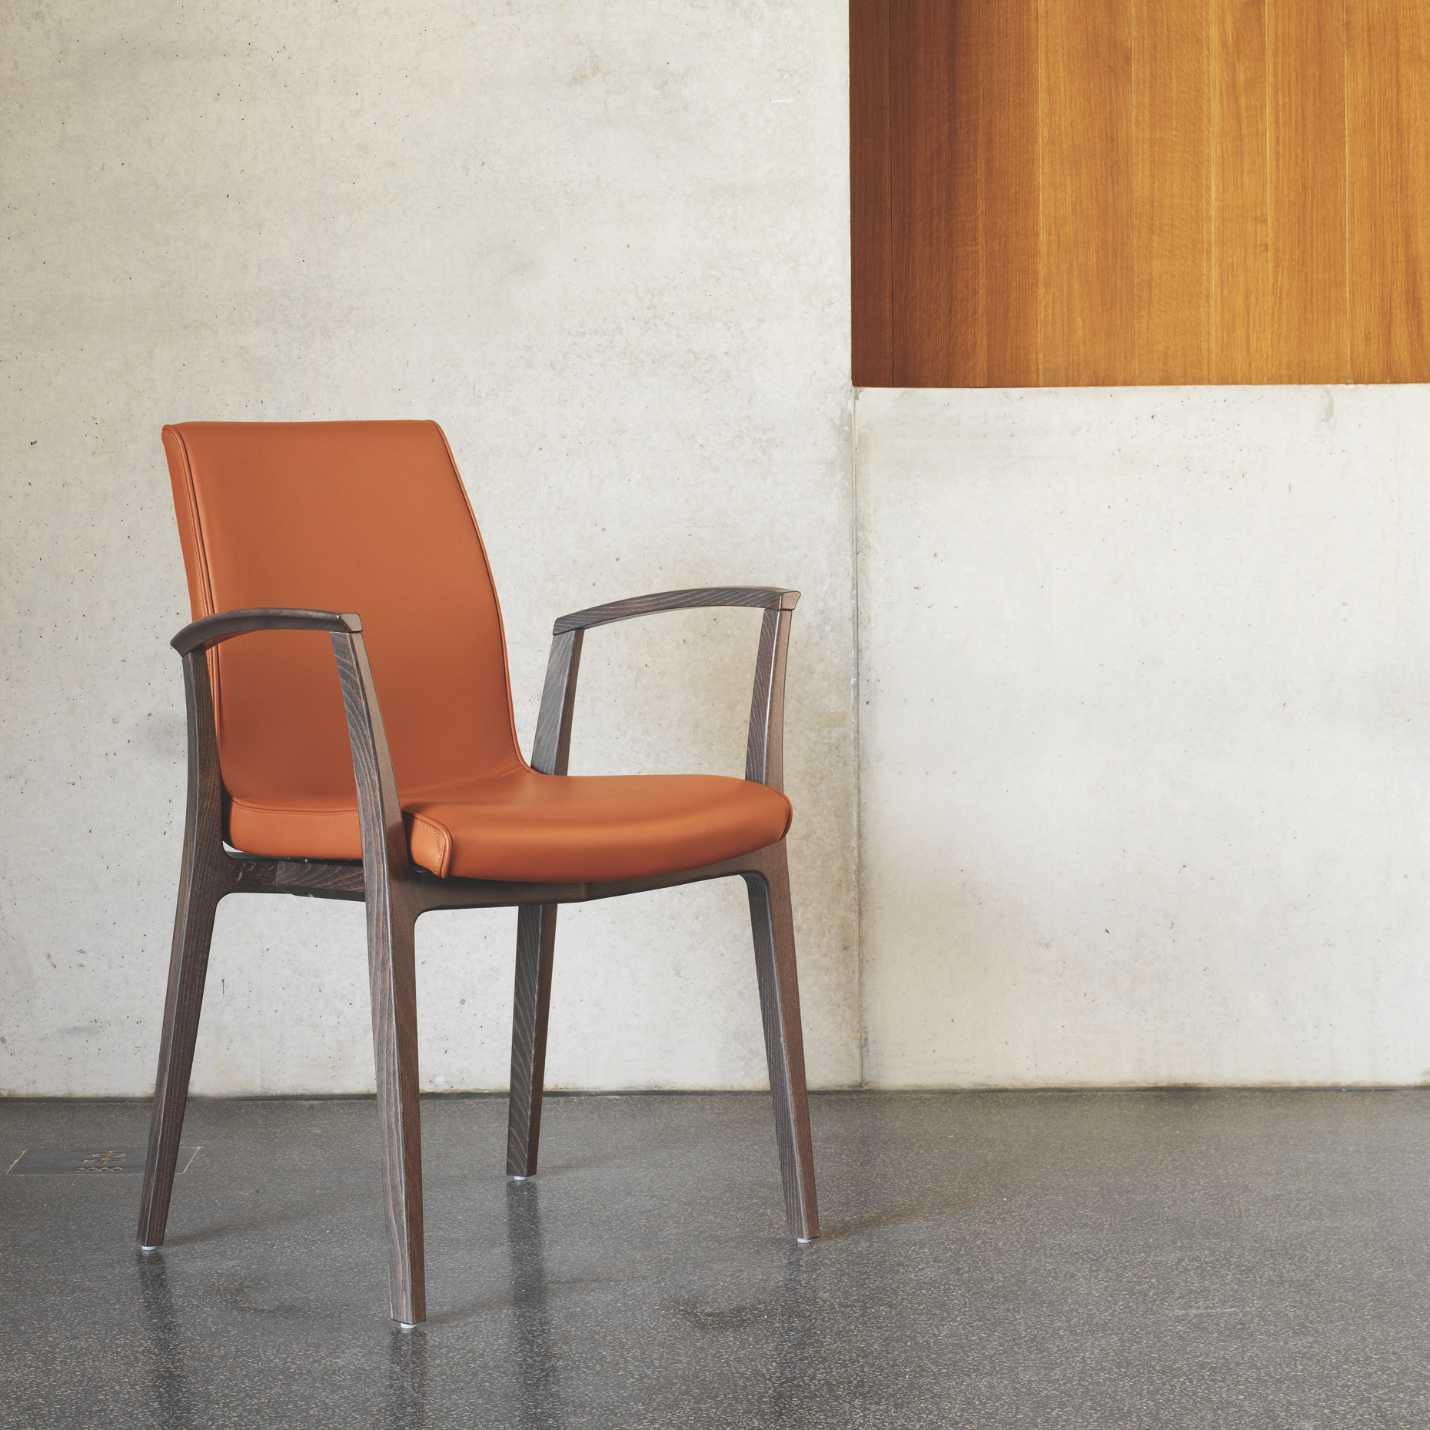 Yara 3500 Chair (Seating)